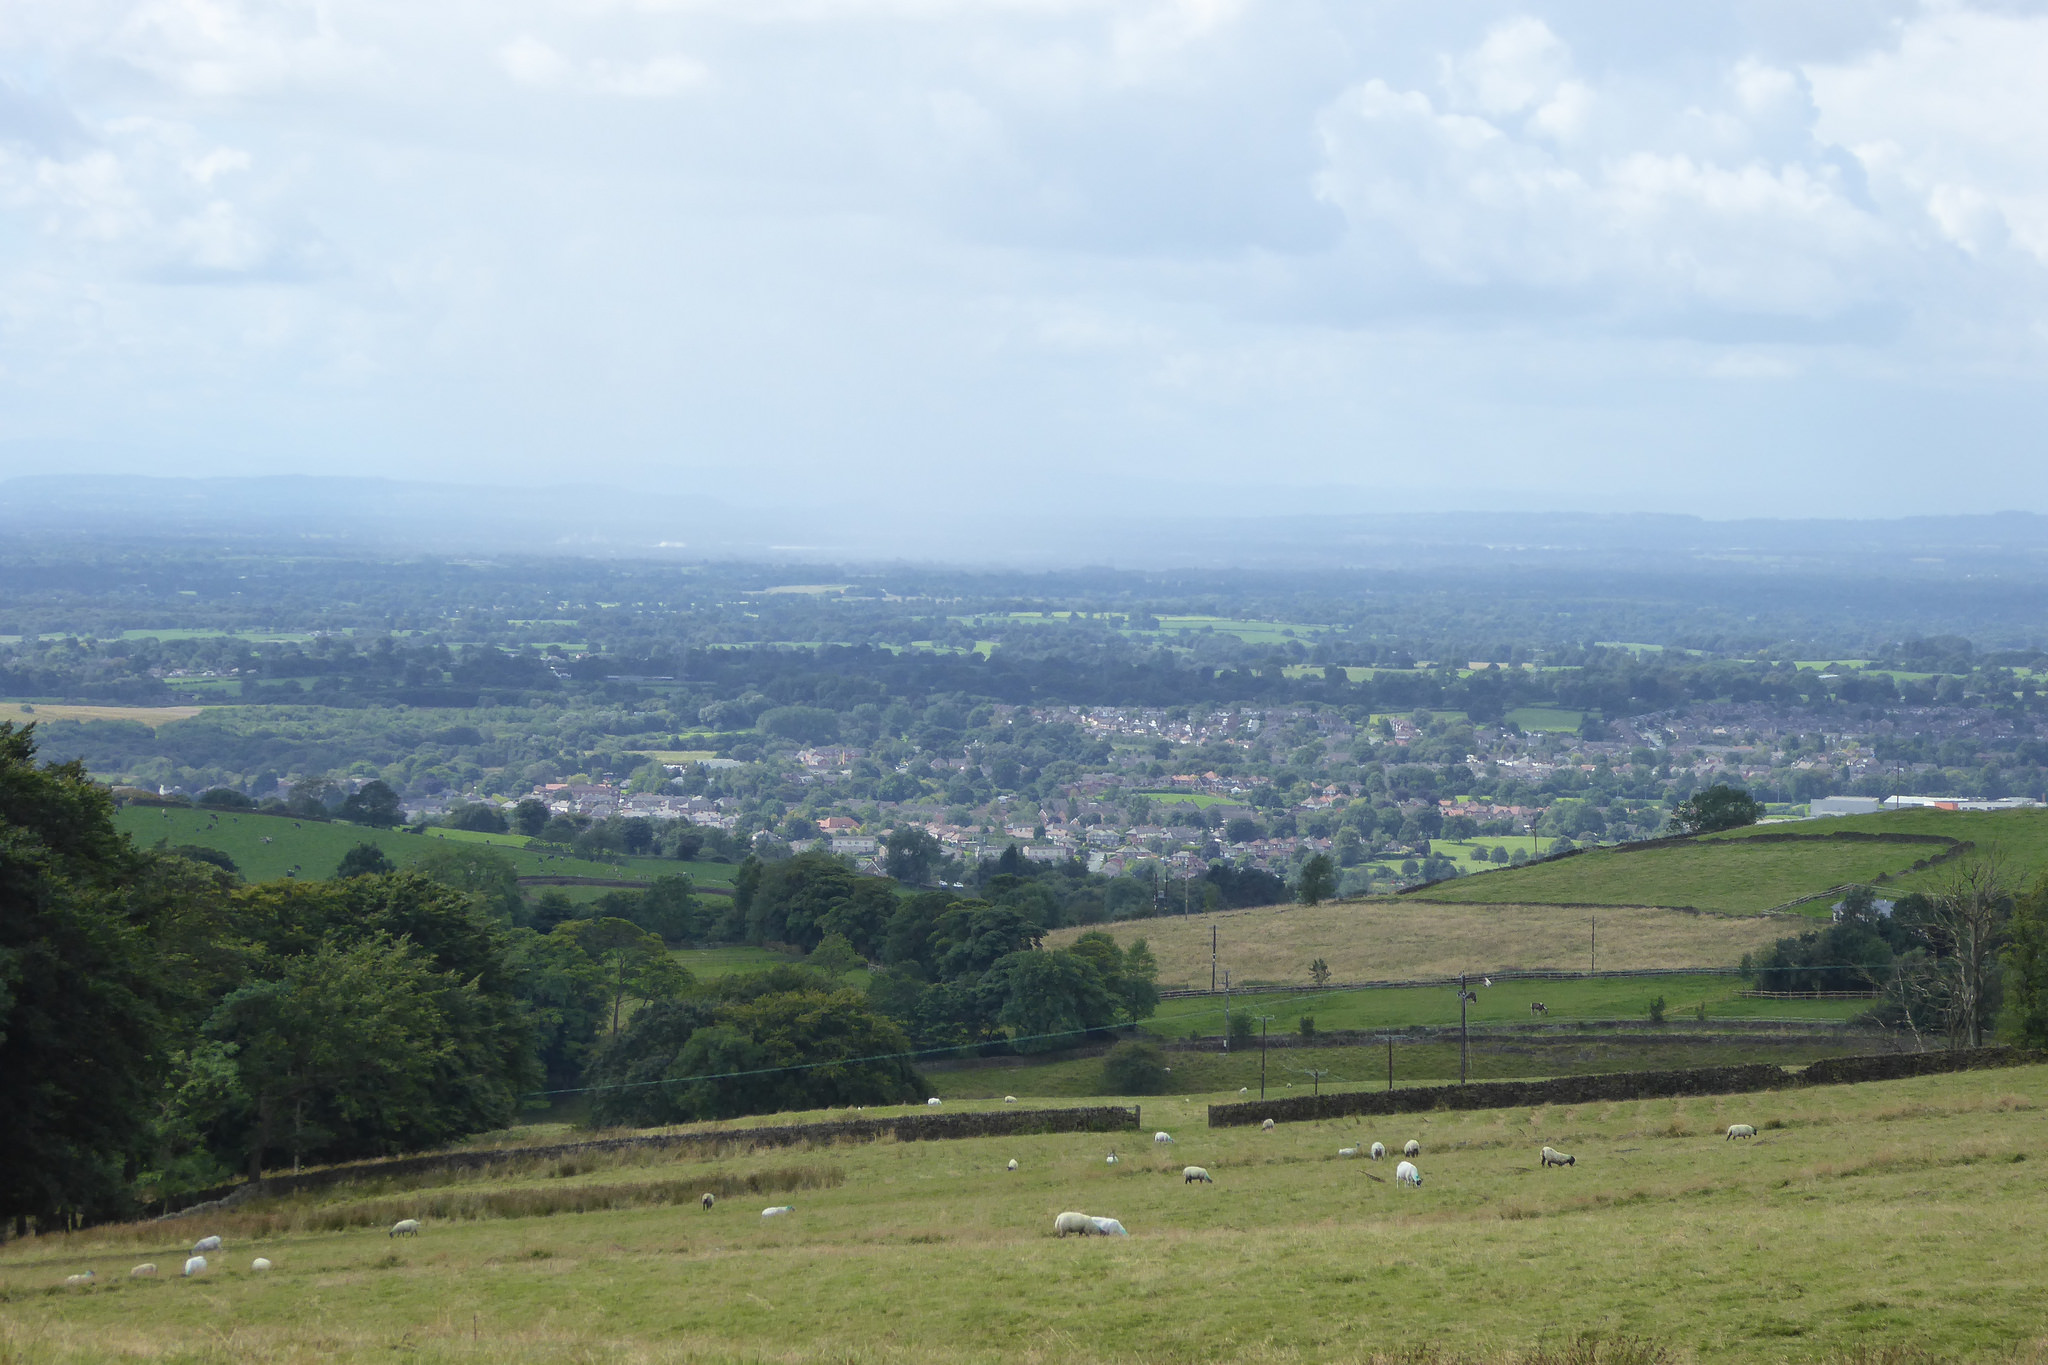 Macclesfield in the distance, seen from near Tegg's Nose Country Park